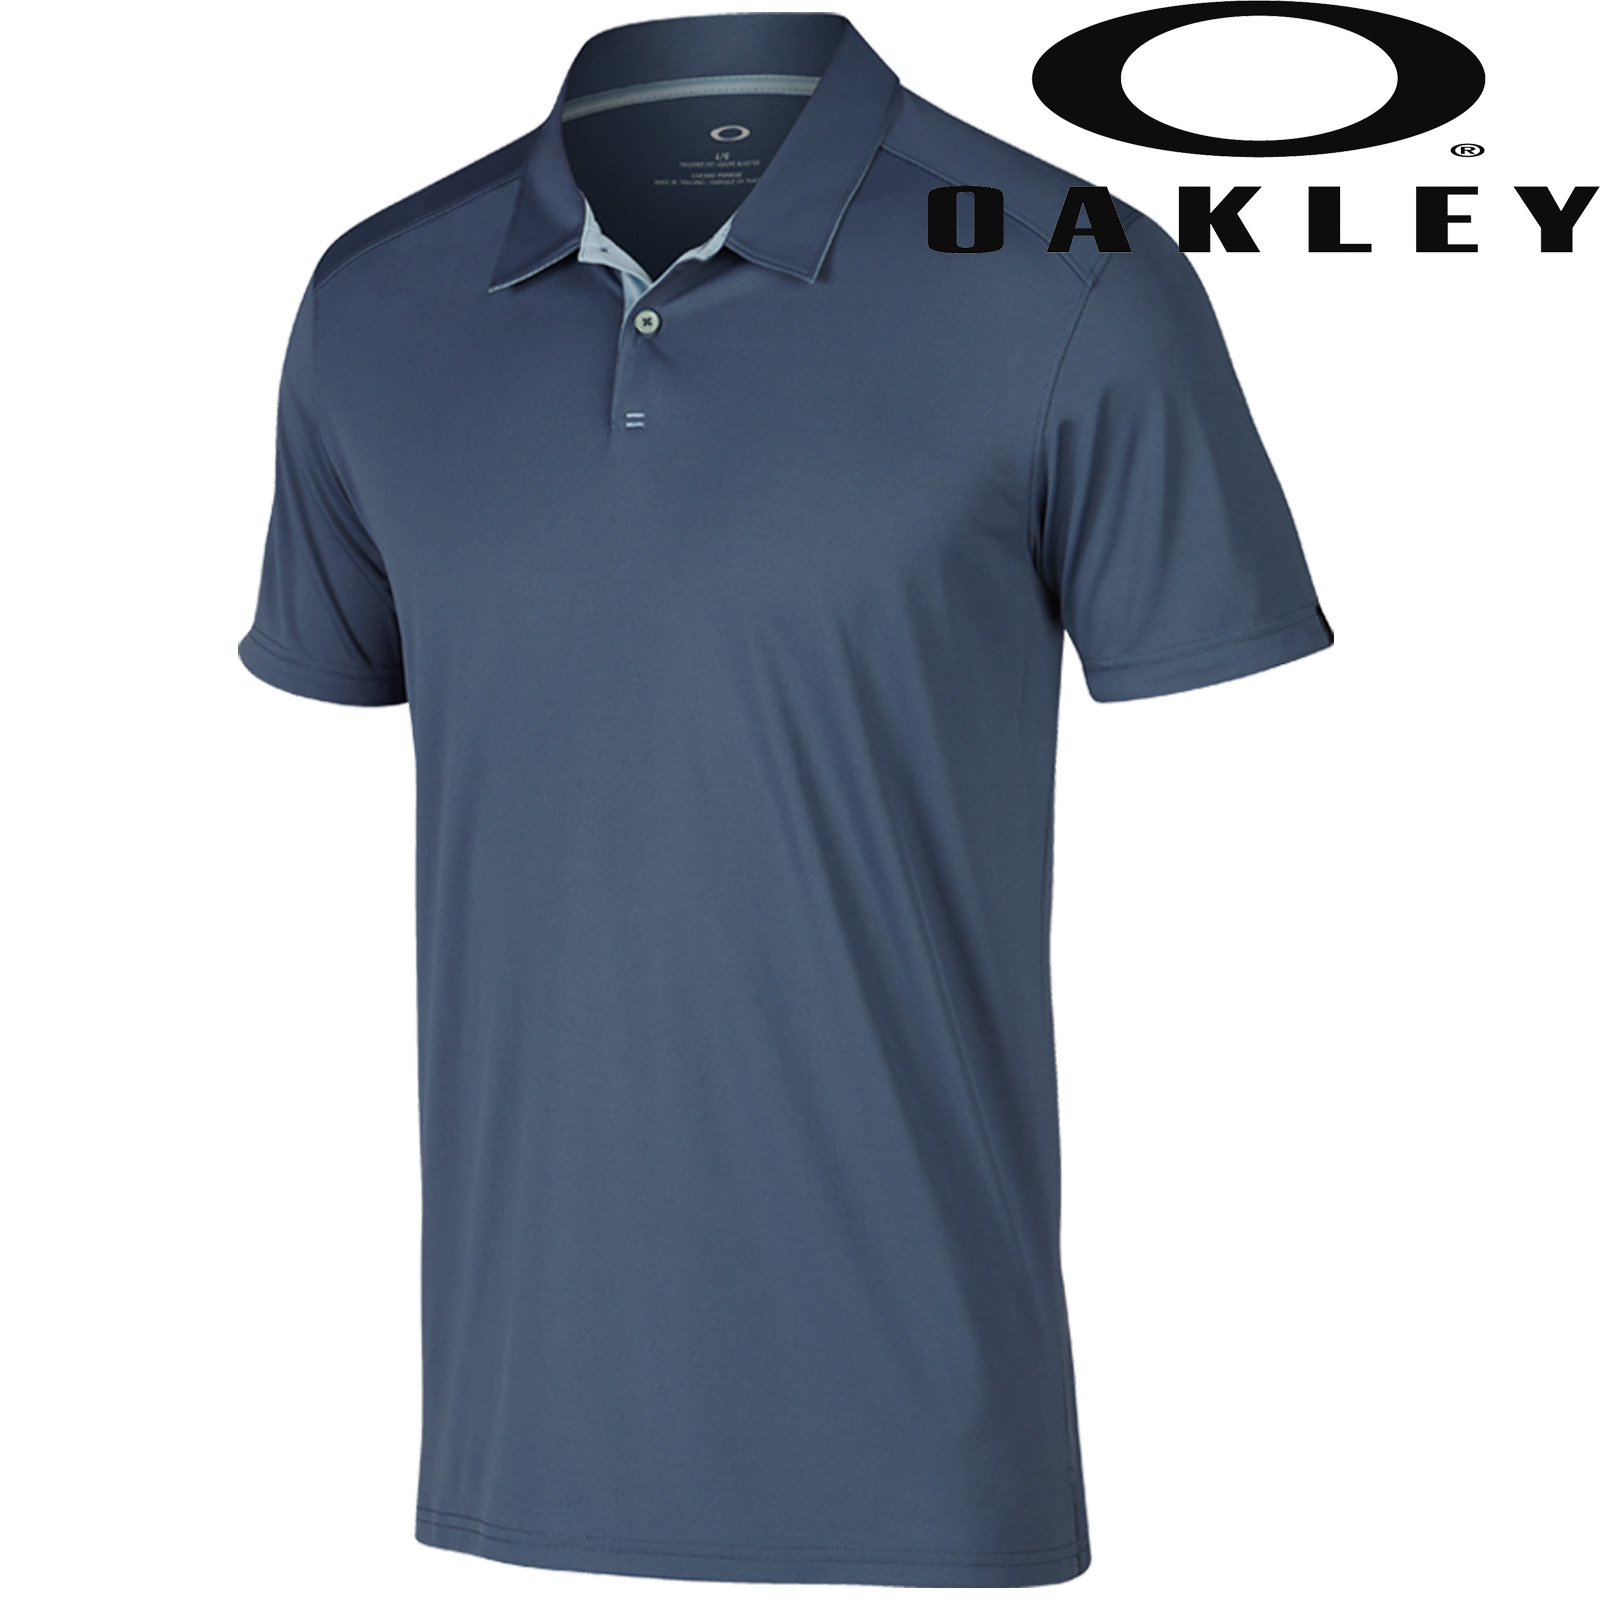 Oakley 2017 mens divisional performance golf polo shirt ebay for Polo golf performance shirt